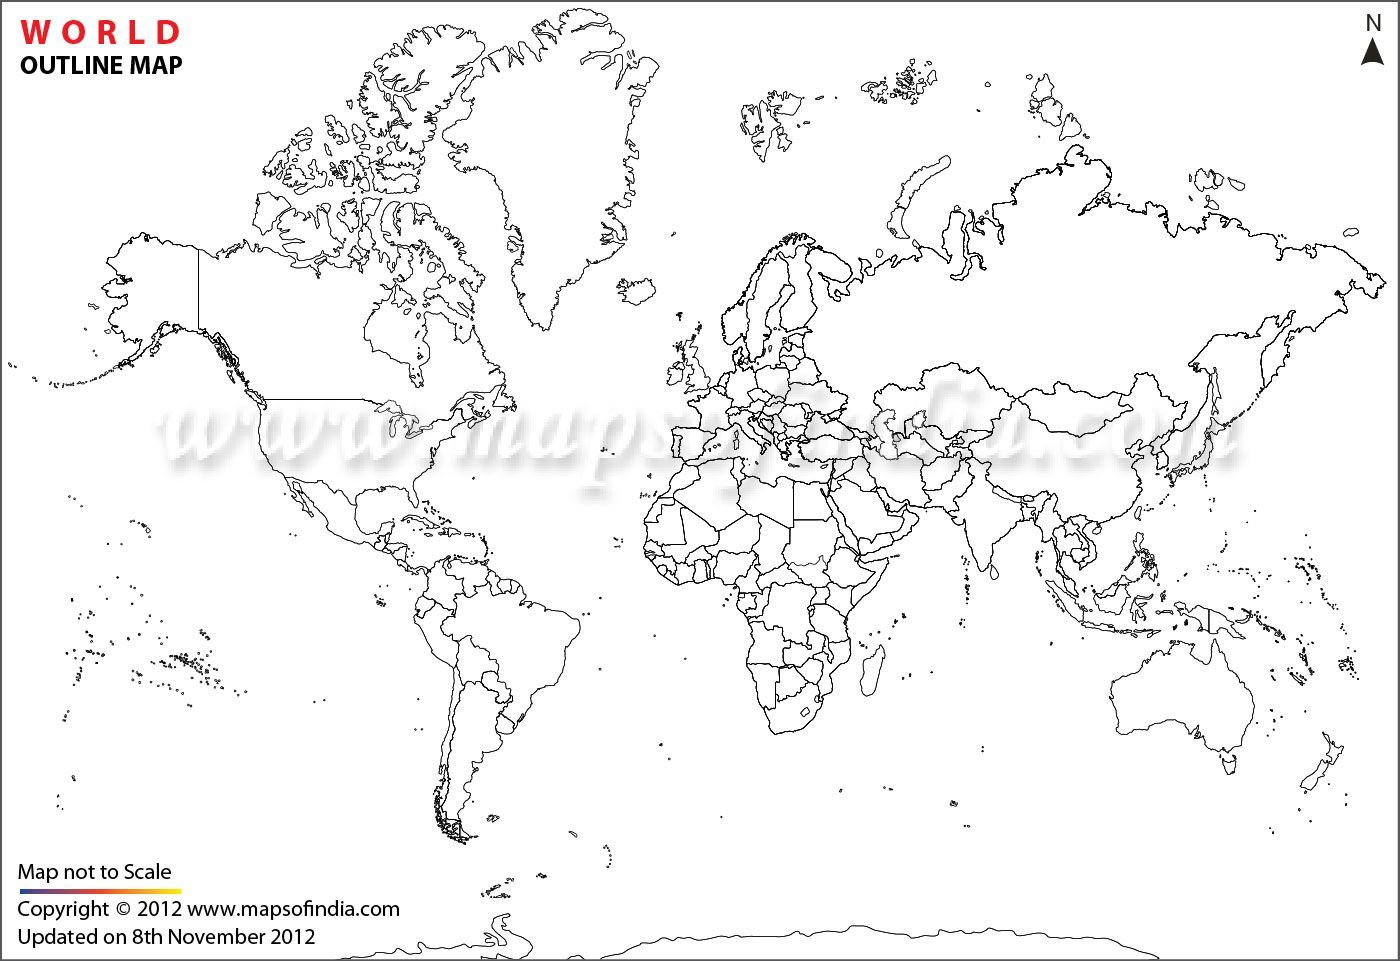 Blank Political World Map Worksheet Printable Worksheets Are A Valuable Classroom Tool They No Lon In 2021 World Map Printable World Map Outline World Political Map Free printable world map worksheets